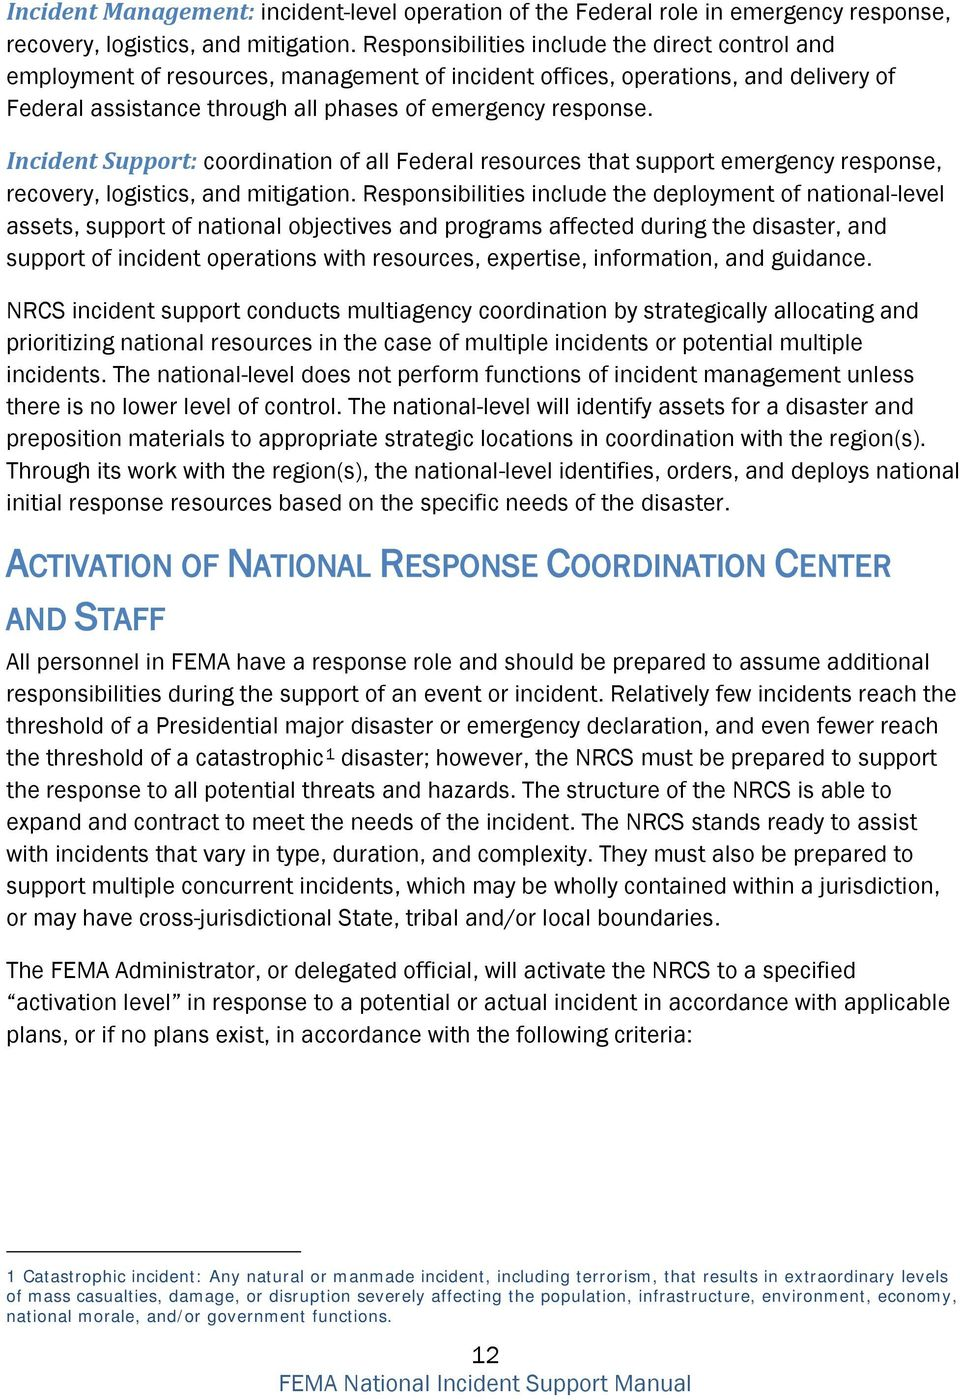 Incident Support: coordination of all Federal resources that support emergency response, recovery, logistics, and mitigation.